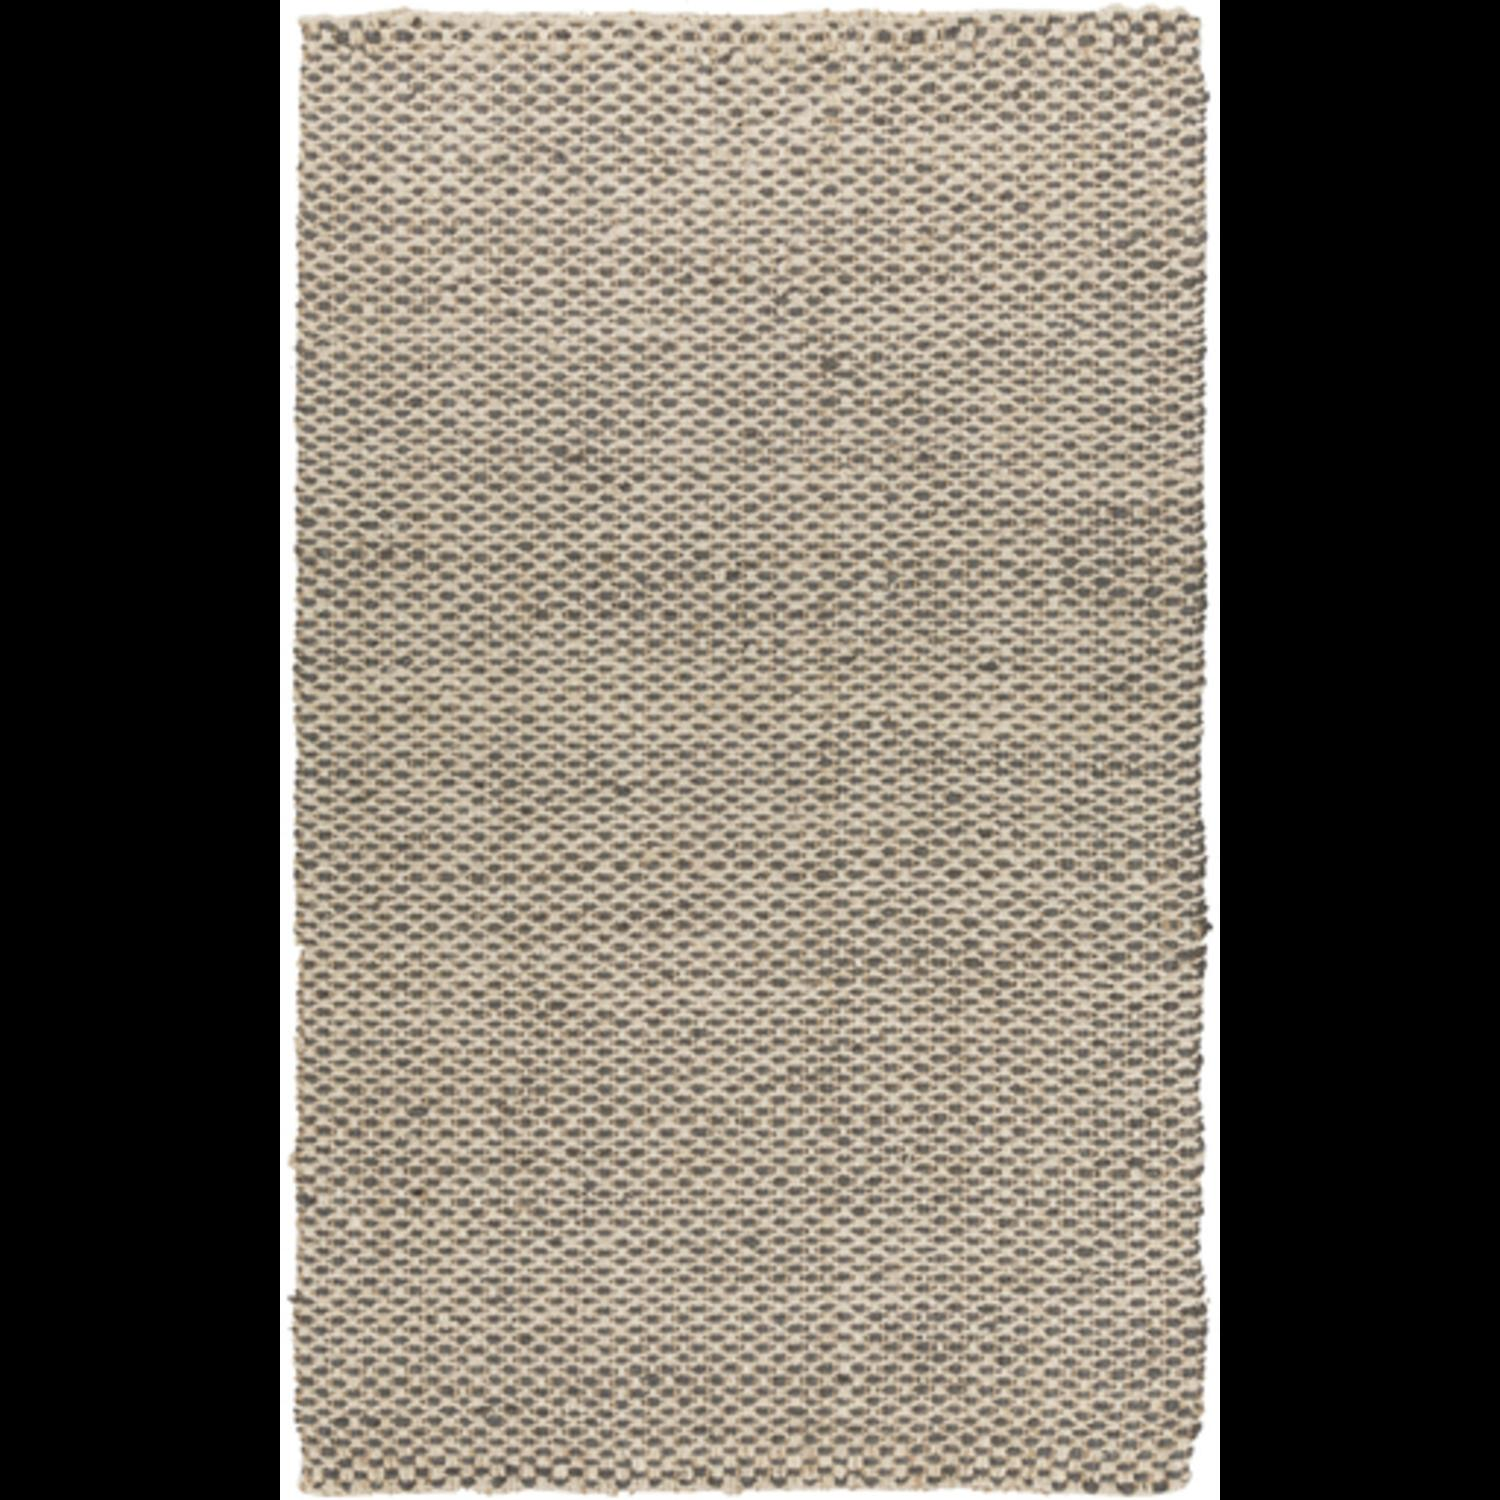 2' x 3' Alluring Burlap Slate Gray and Ivory Hand Woven Jute Area Throw Rug